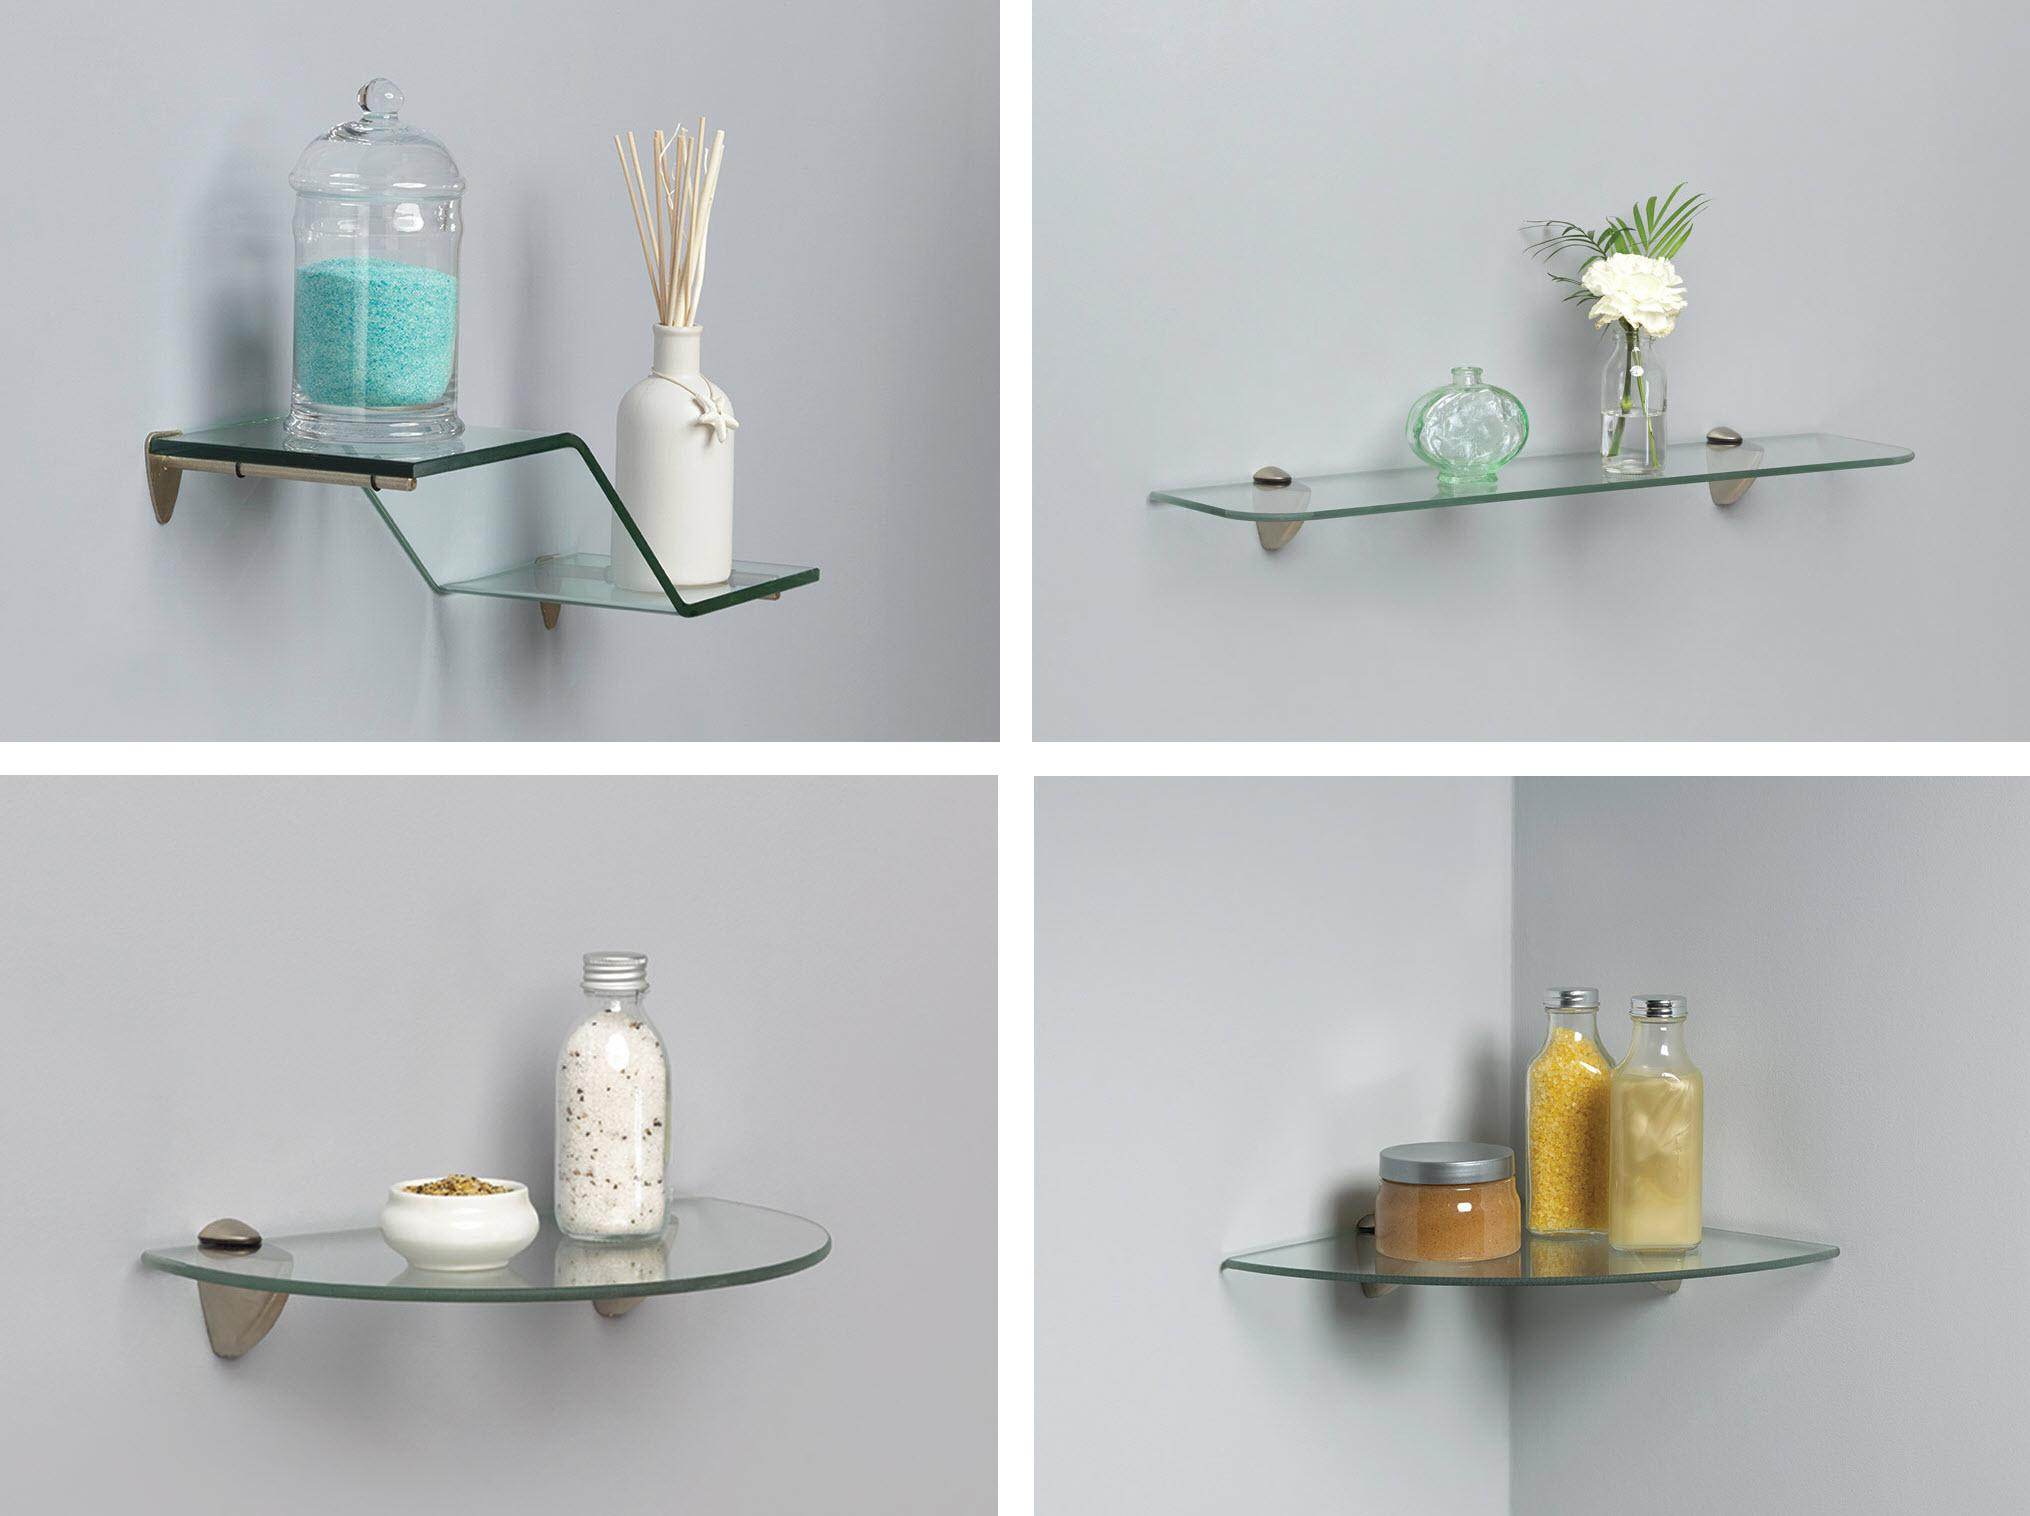 The Classic, Curved, And Corner Shelves Are Made With Tempered Glass For  Strength And Safety ...